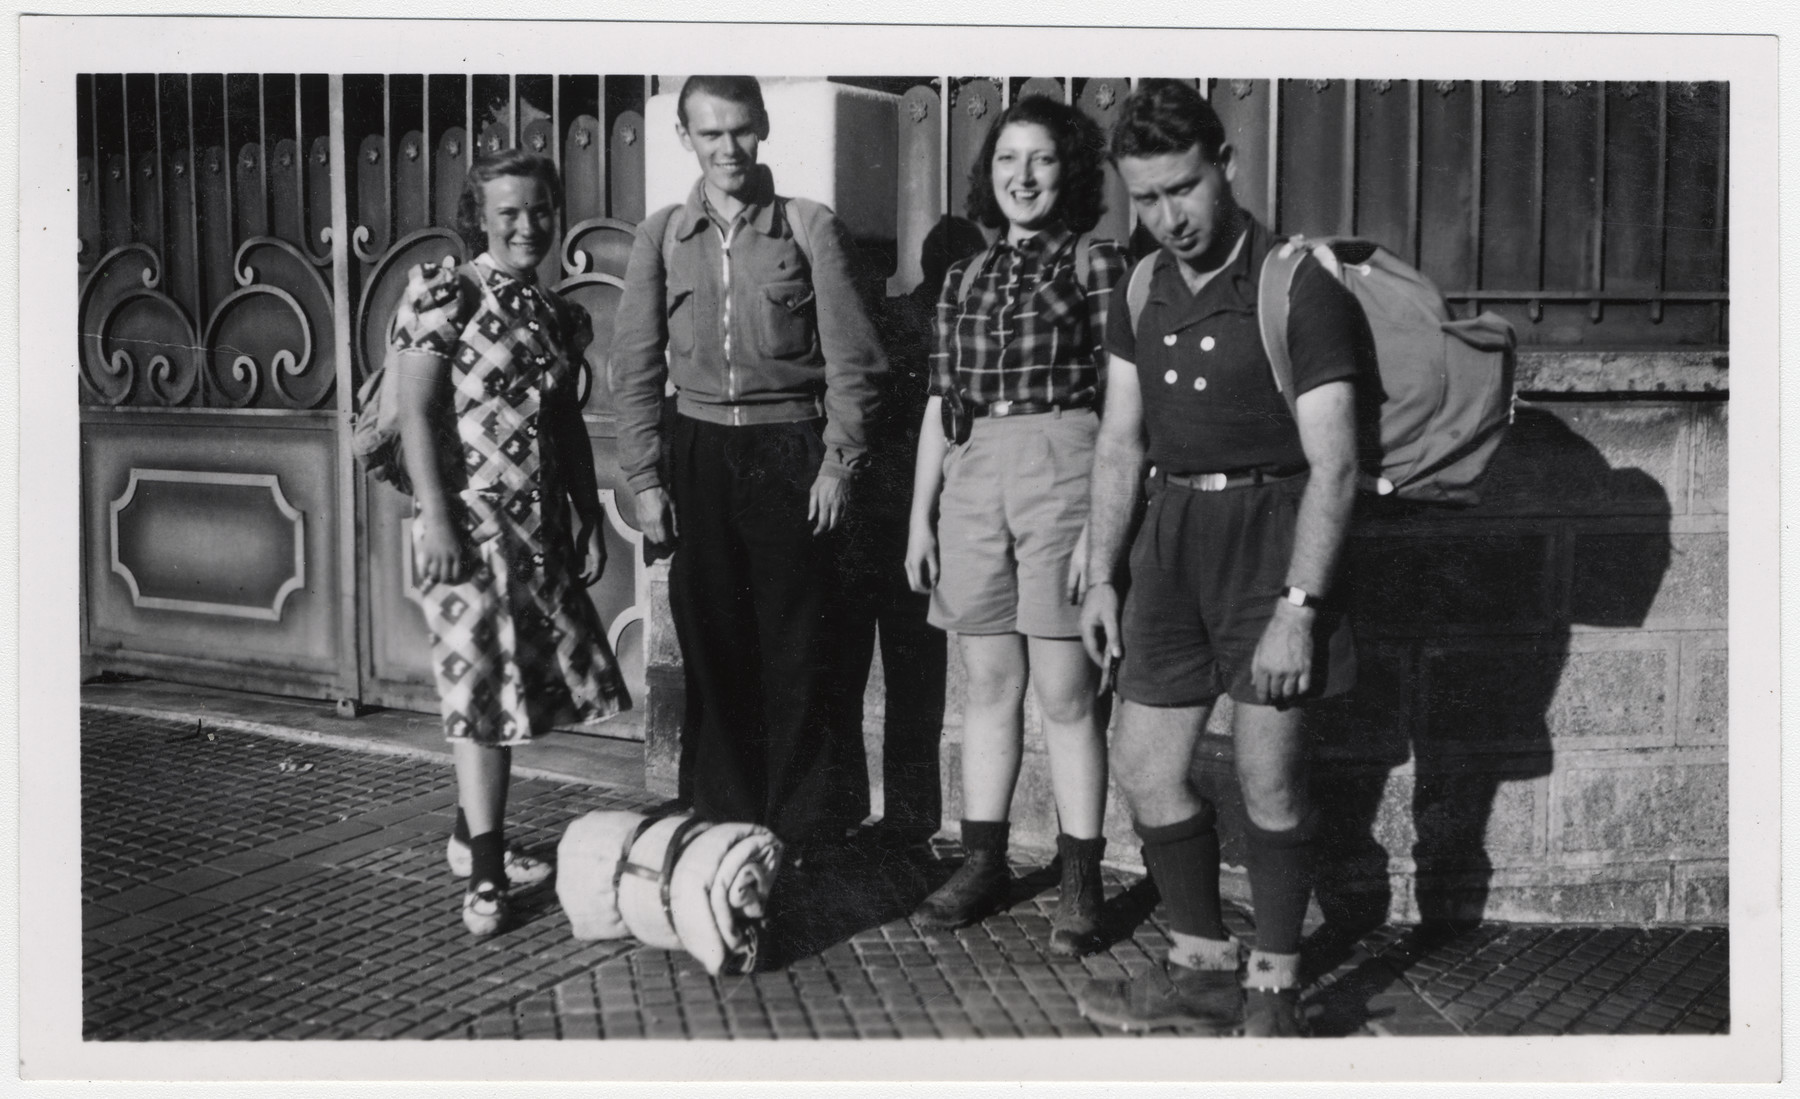 Four young people pose together with their backpacks and sleeping bags.    Henri Moskow is pictured on the far right.